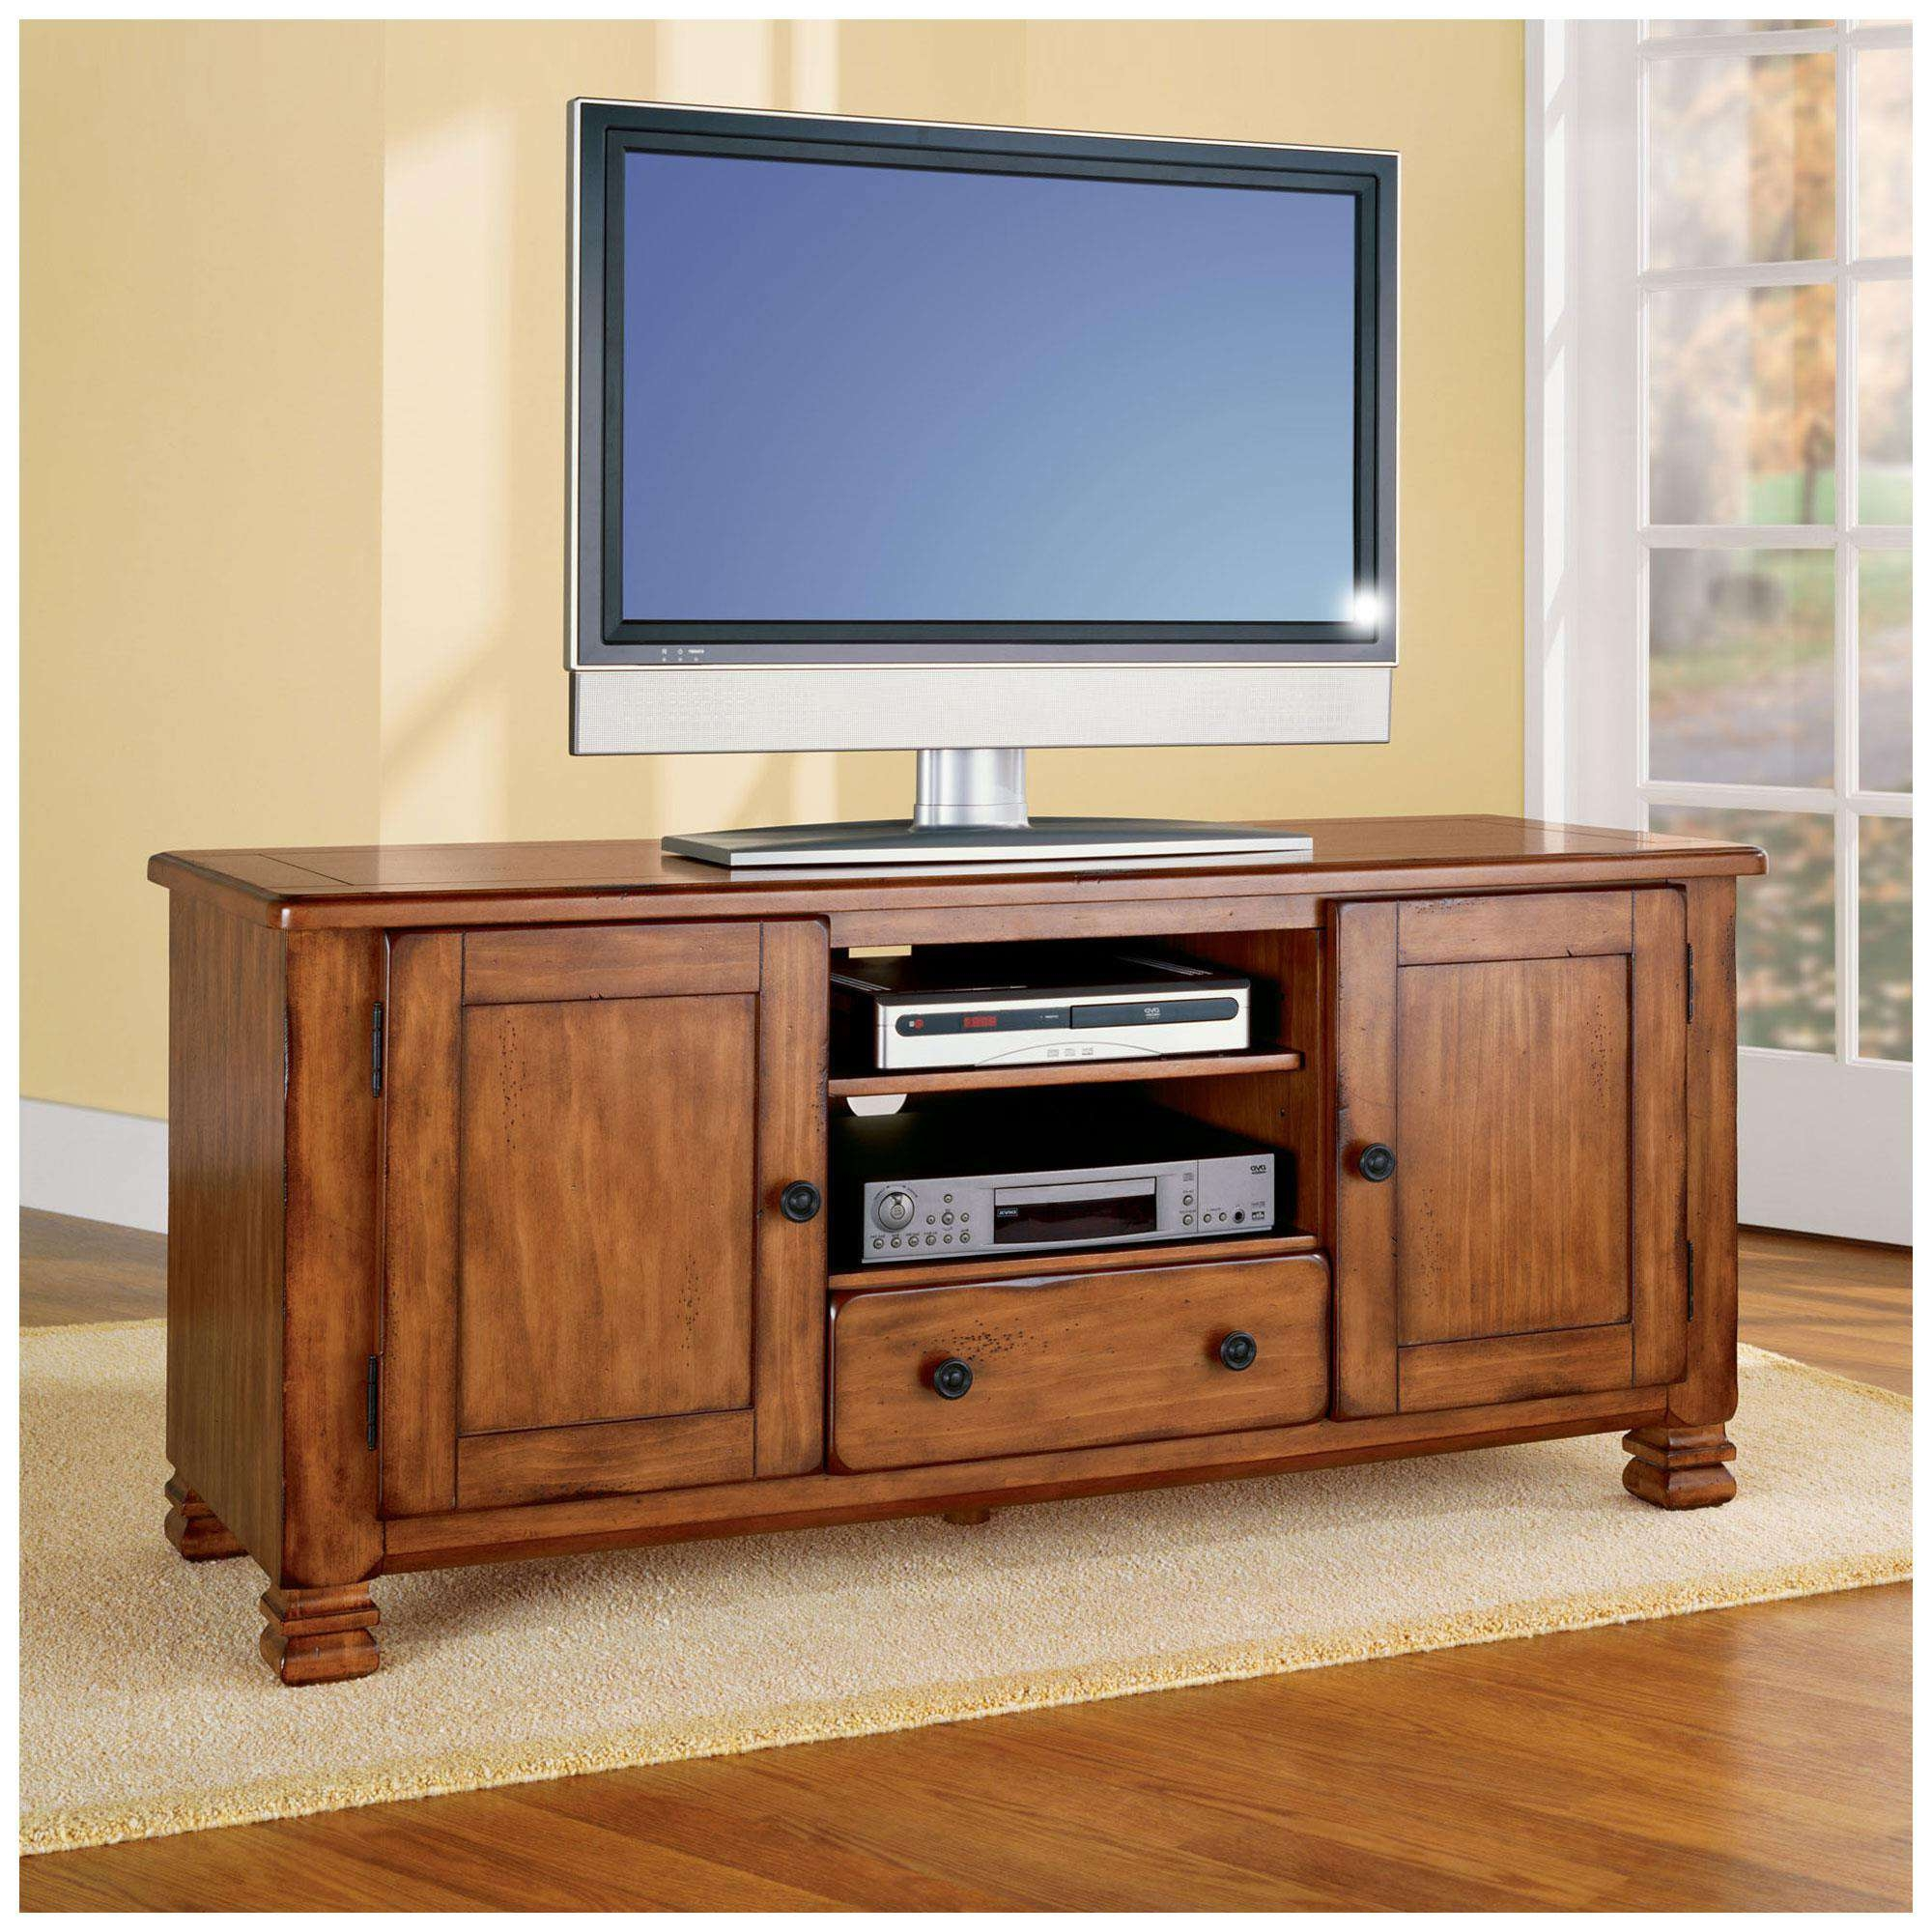 79 Literarywondrous Light Wood Tv Stand Photo Design Home Stands Pertaining To Hardwood Tv Stands (View 1 of 15)